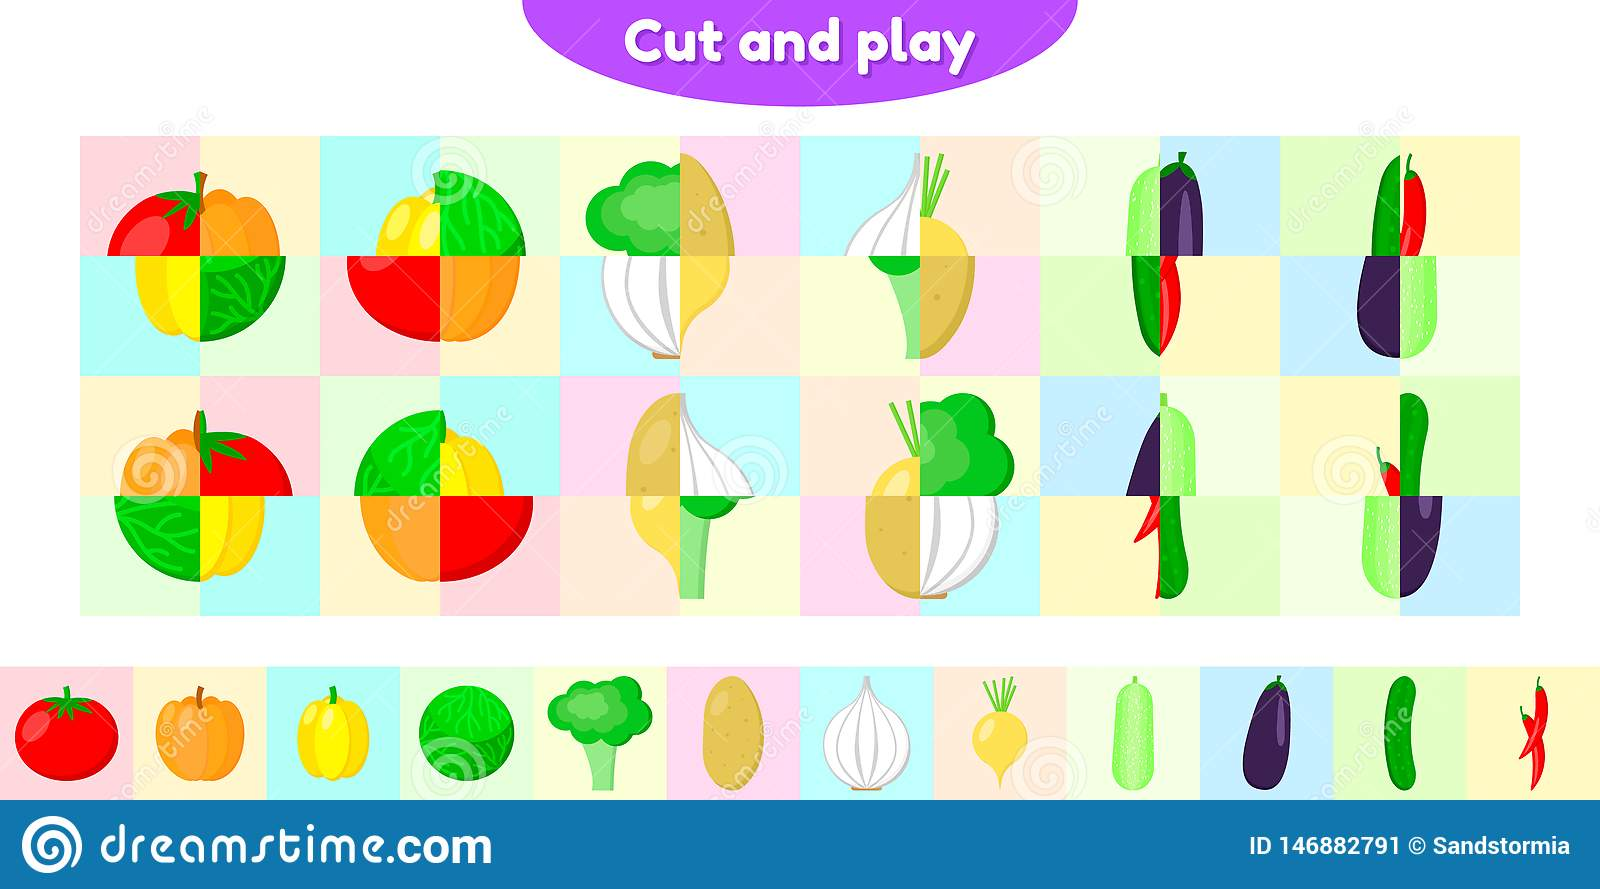 Educational Game For Preschool And School Age Children